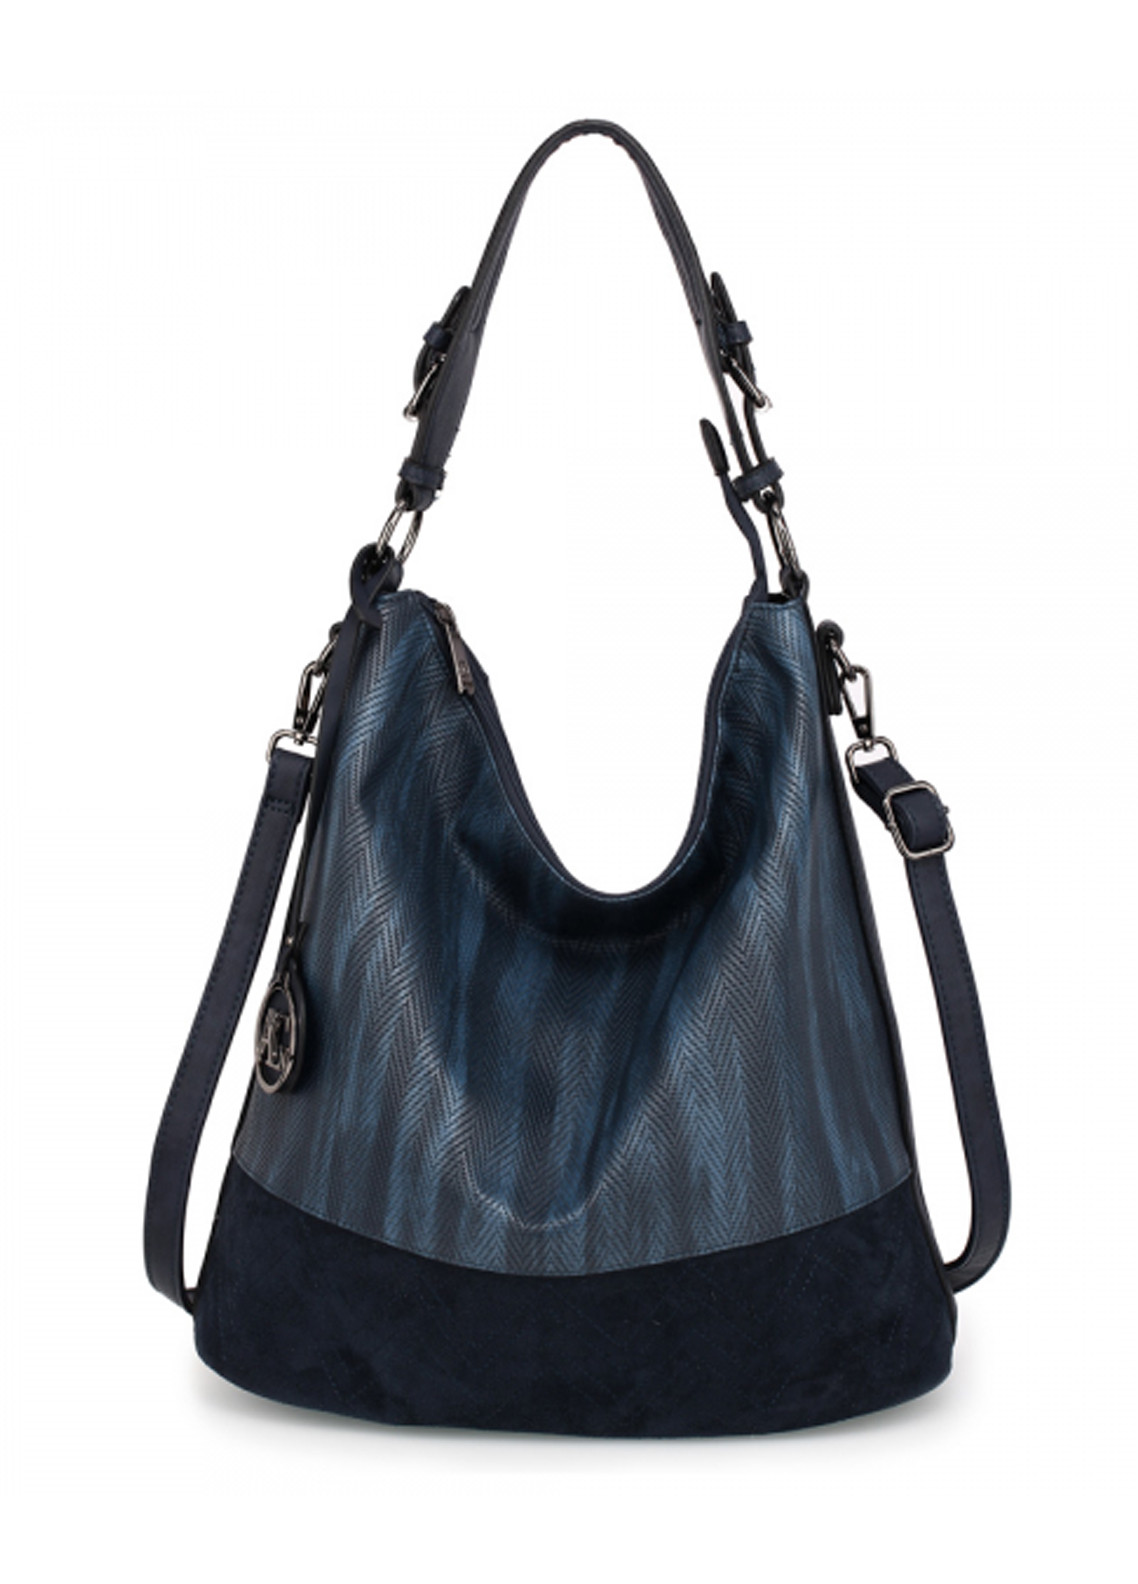 05e5d58bcdfb Anna Grace London Faux Leather Hobo Bags for Women Navy with Plain Texture  Metal Work